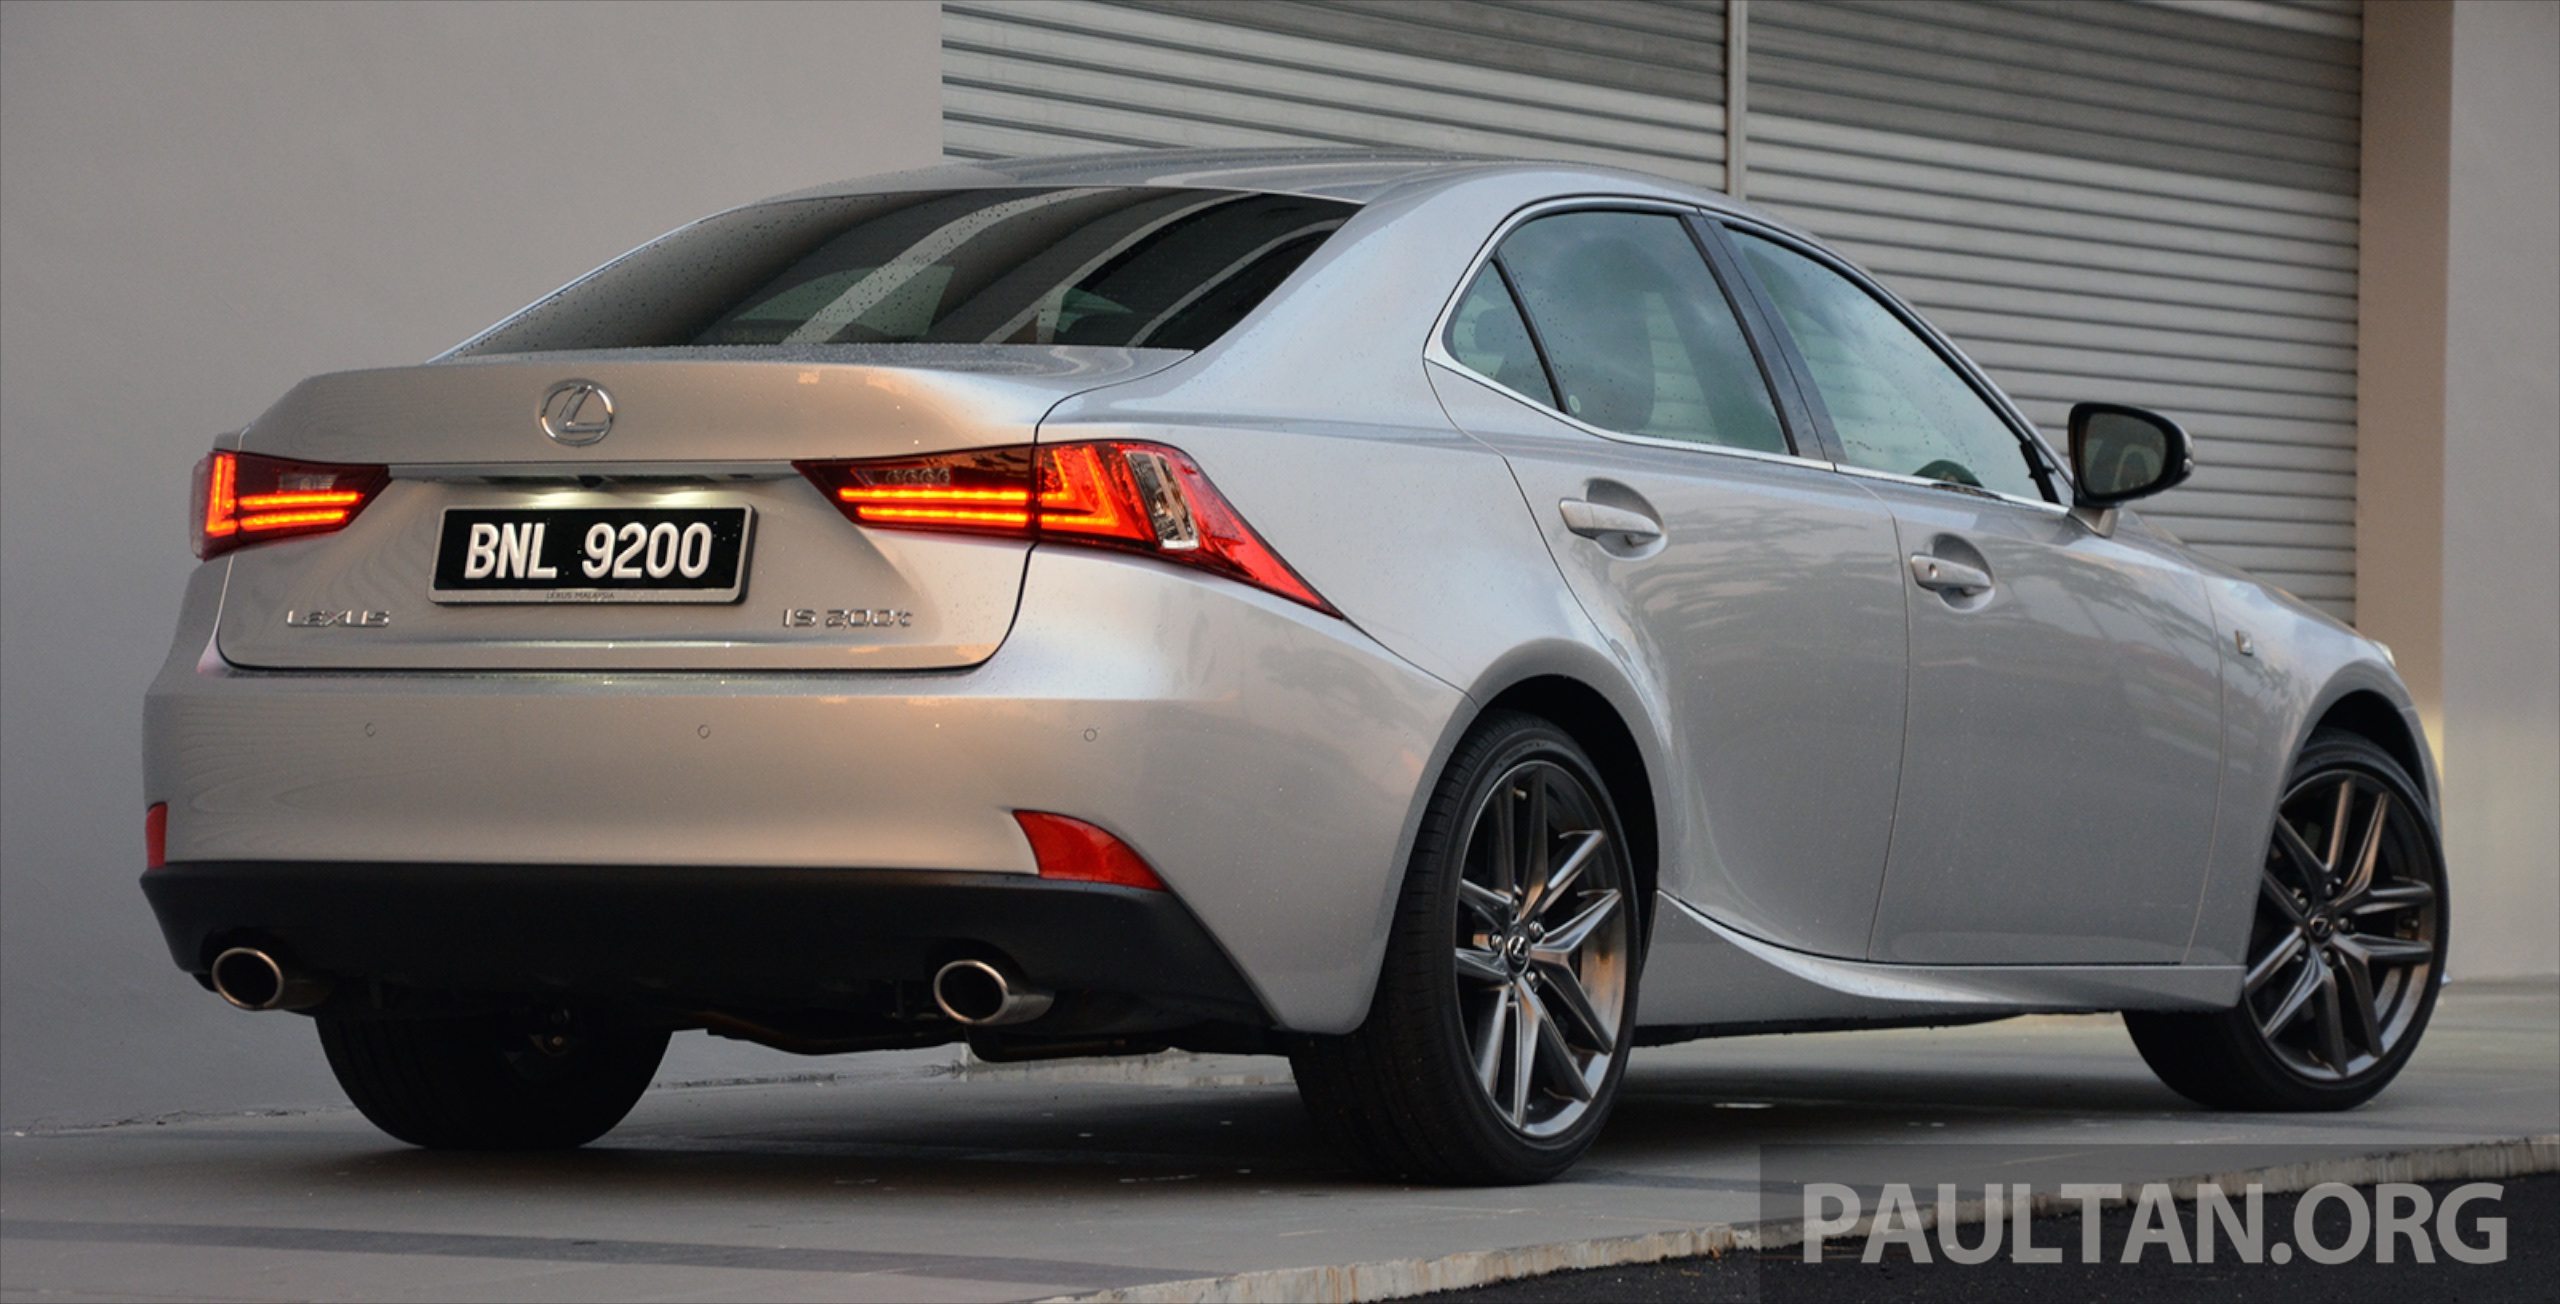 driven lexus is 200t turbo downsized at a price paul tan image 421470. Black Bedroom Furniture Sets. Home Design Ideas